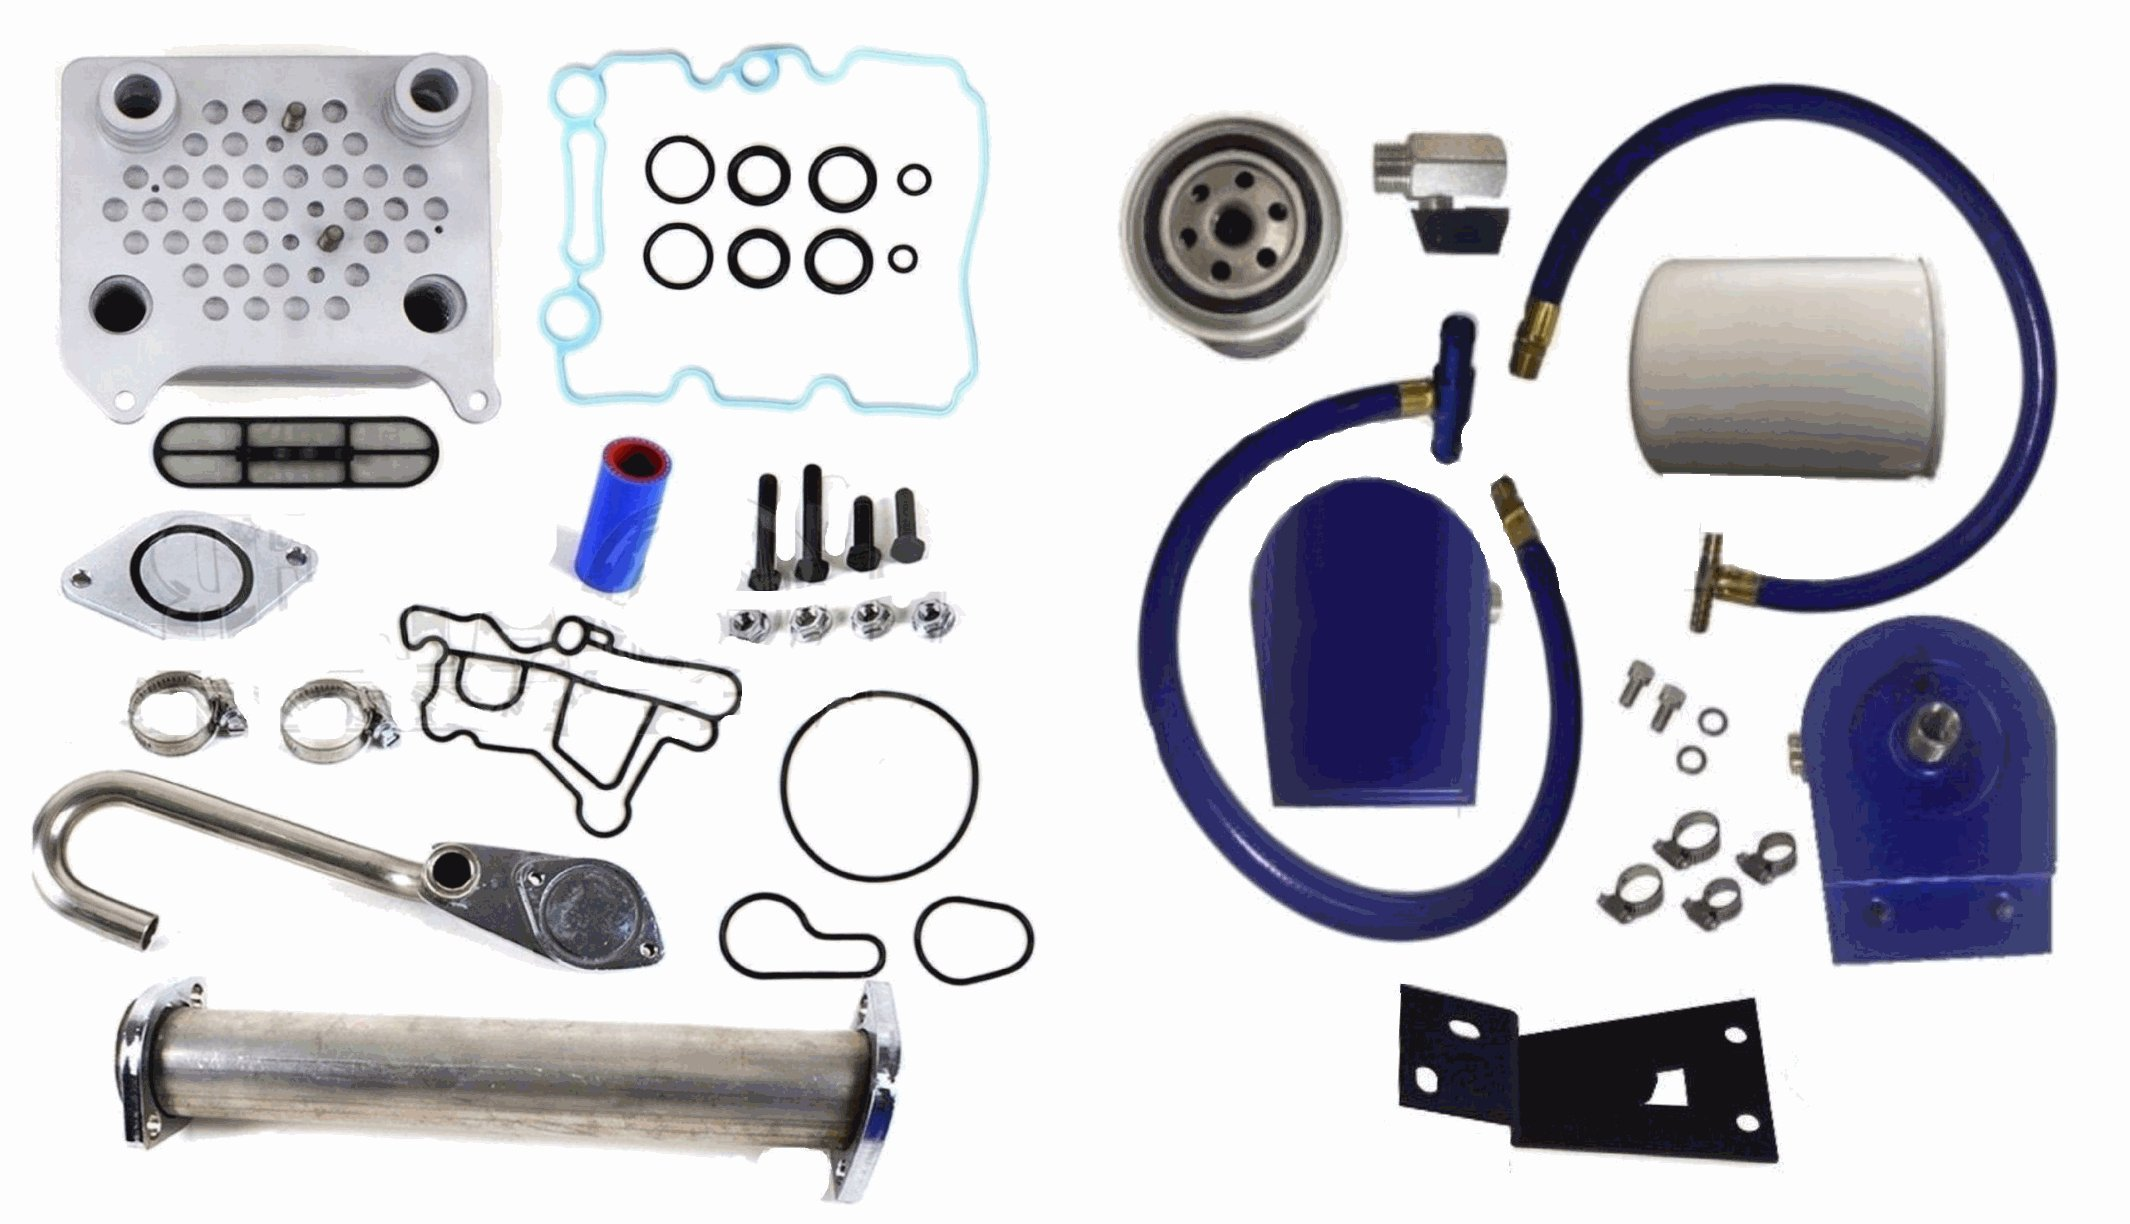 Ford Powerstroke EGR Complete Kit Coolant Filter Diesel 6.0L 2003-2007 Cooler by Auto Express